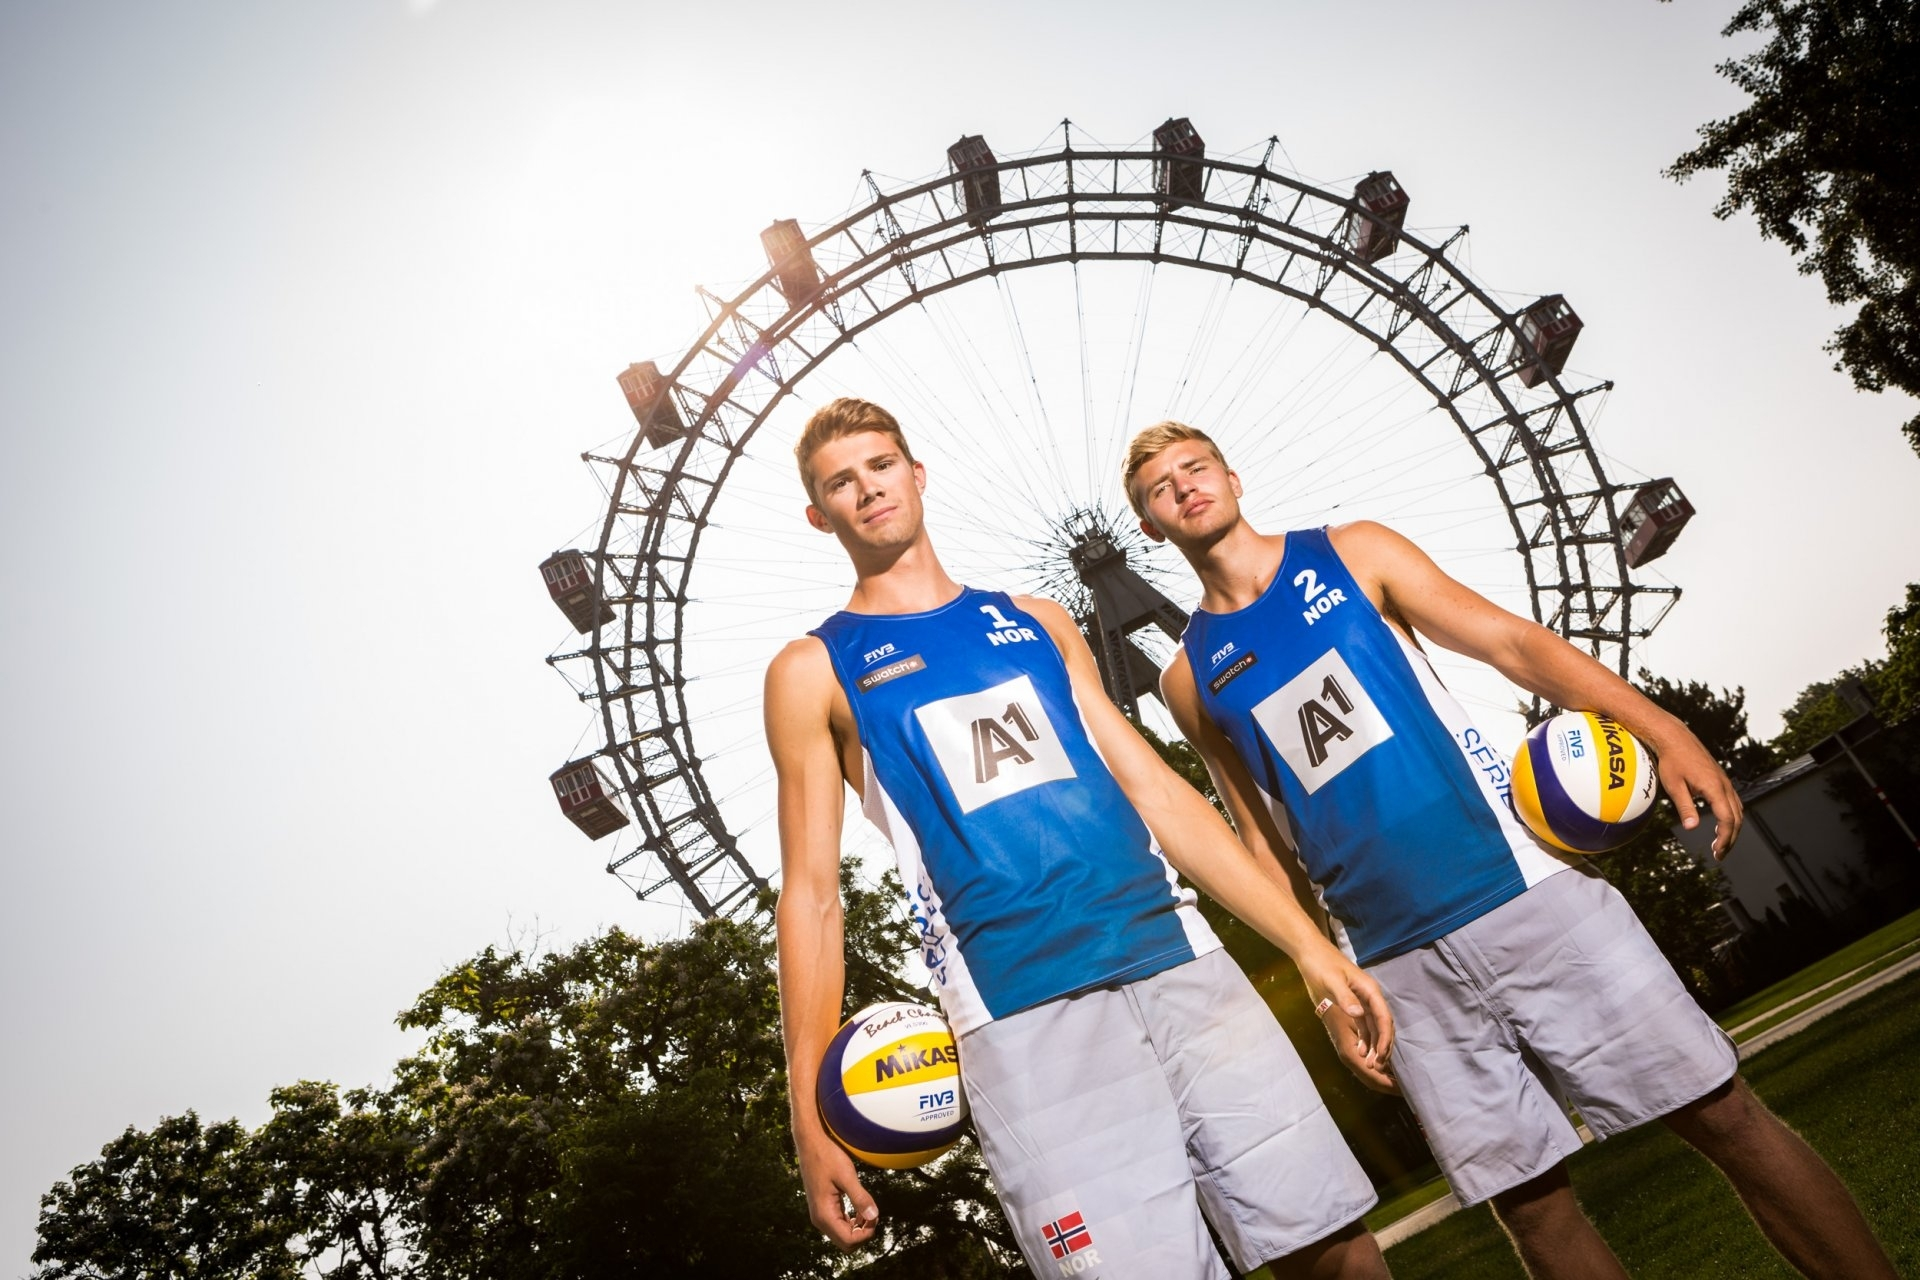 Anders (left) and Christian back on the ground after their game of beach volleyball 215 feet high